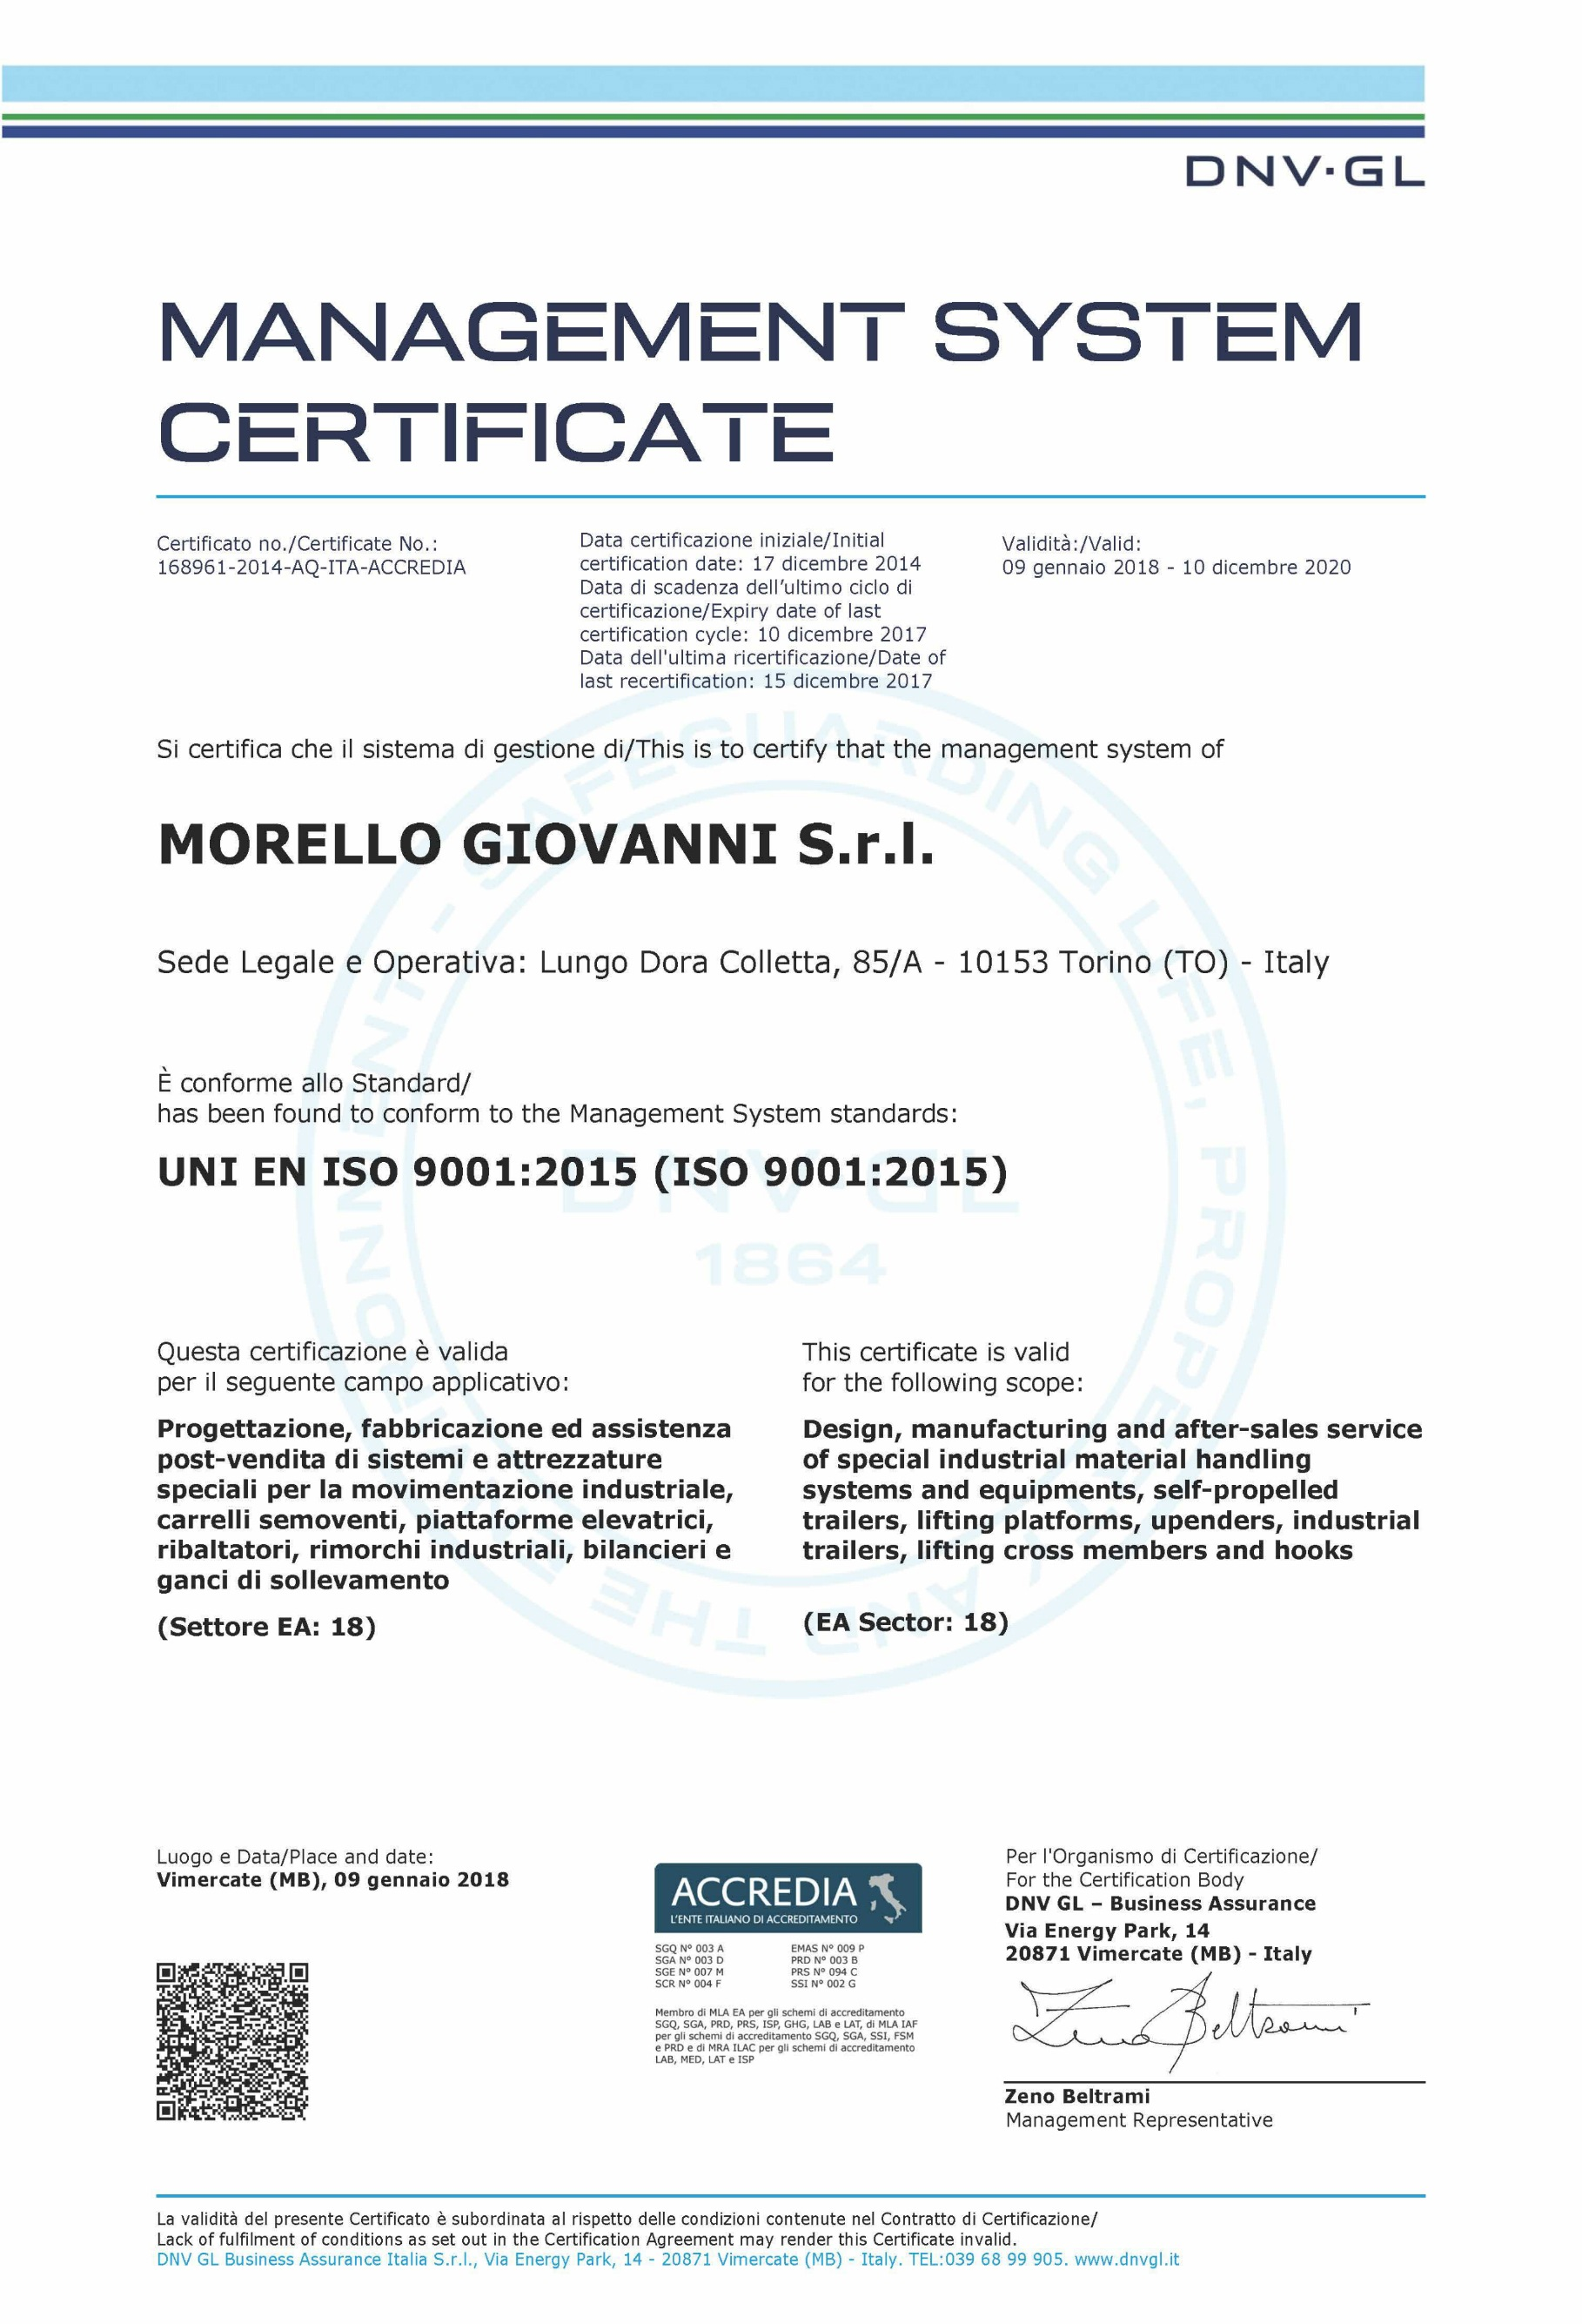 Certifications Integrated Management System Morello